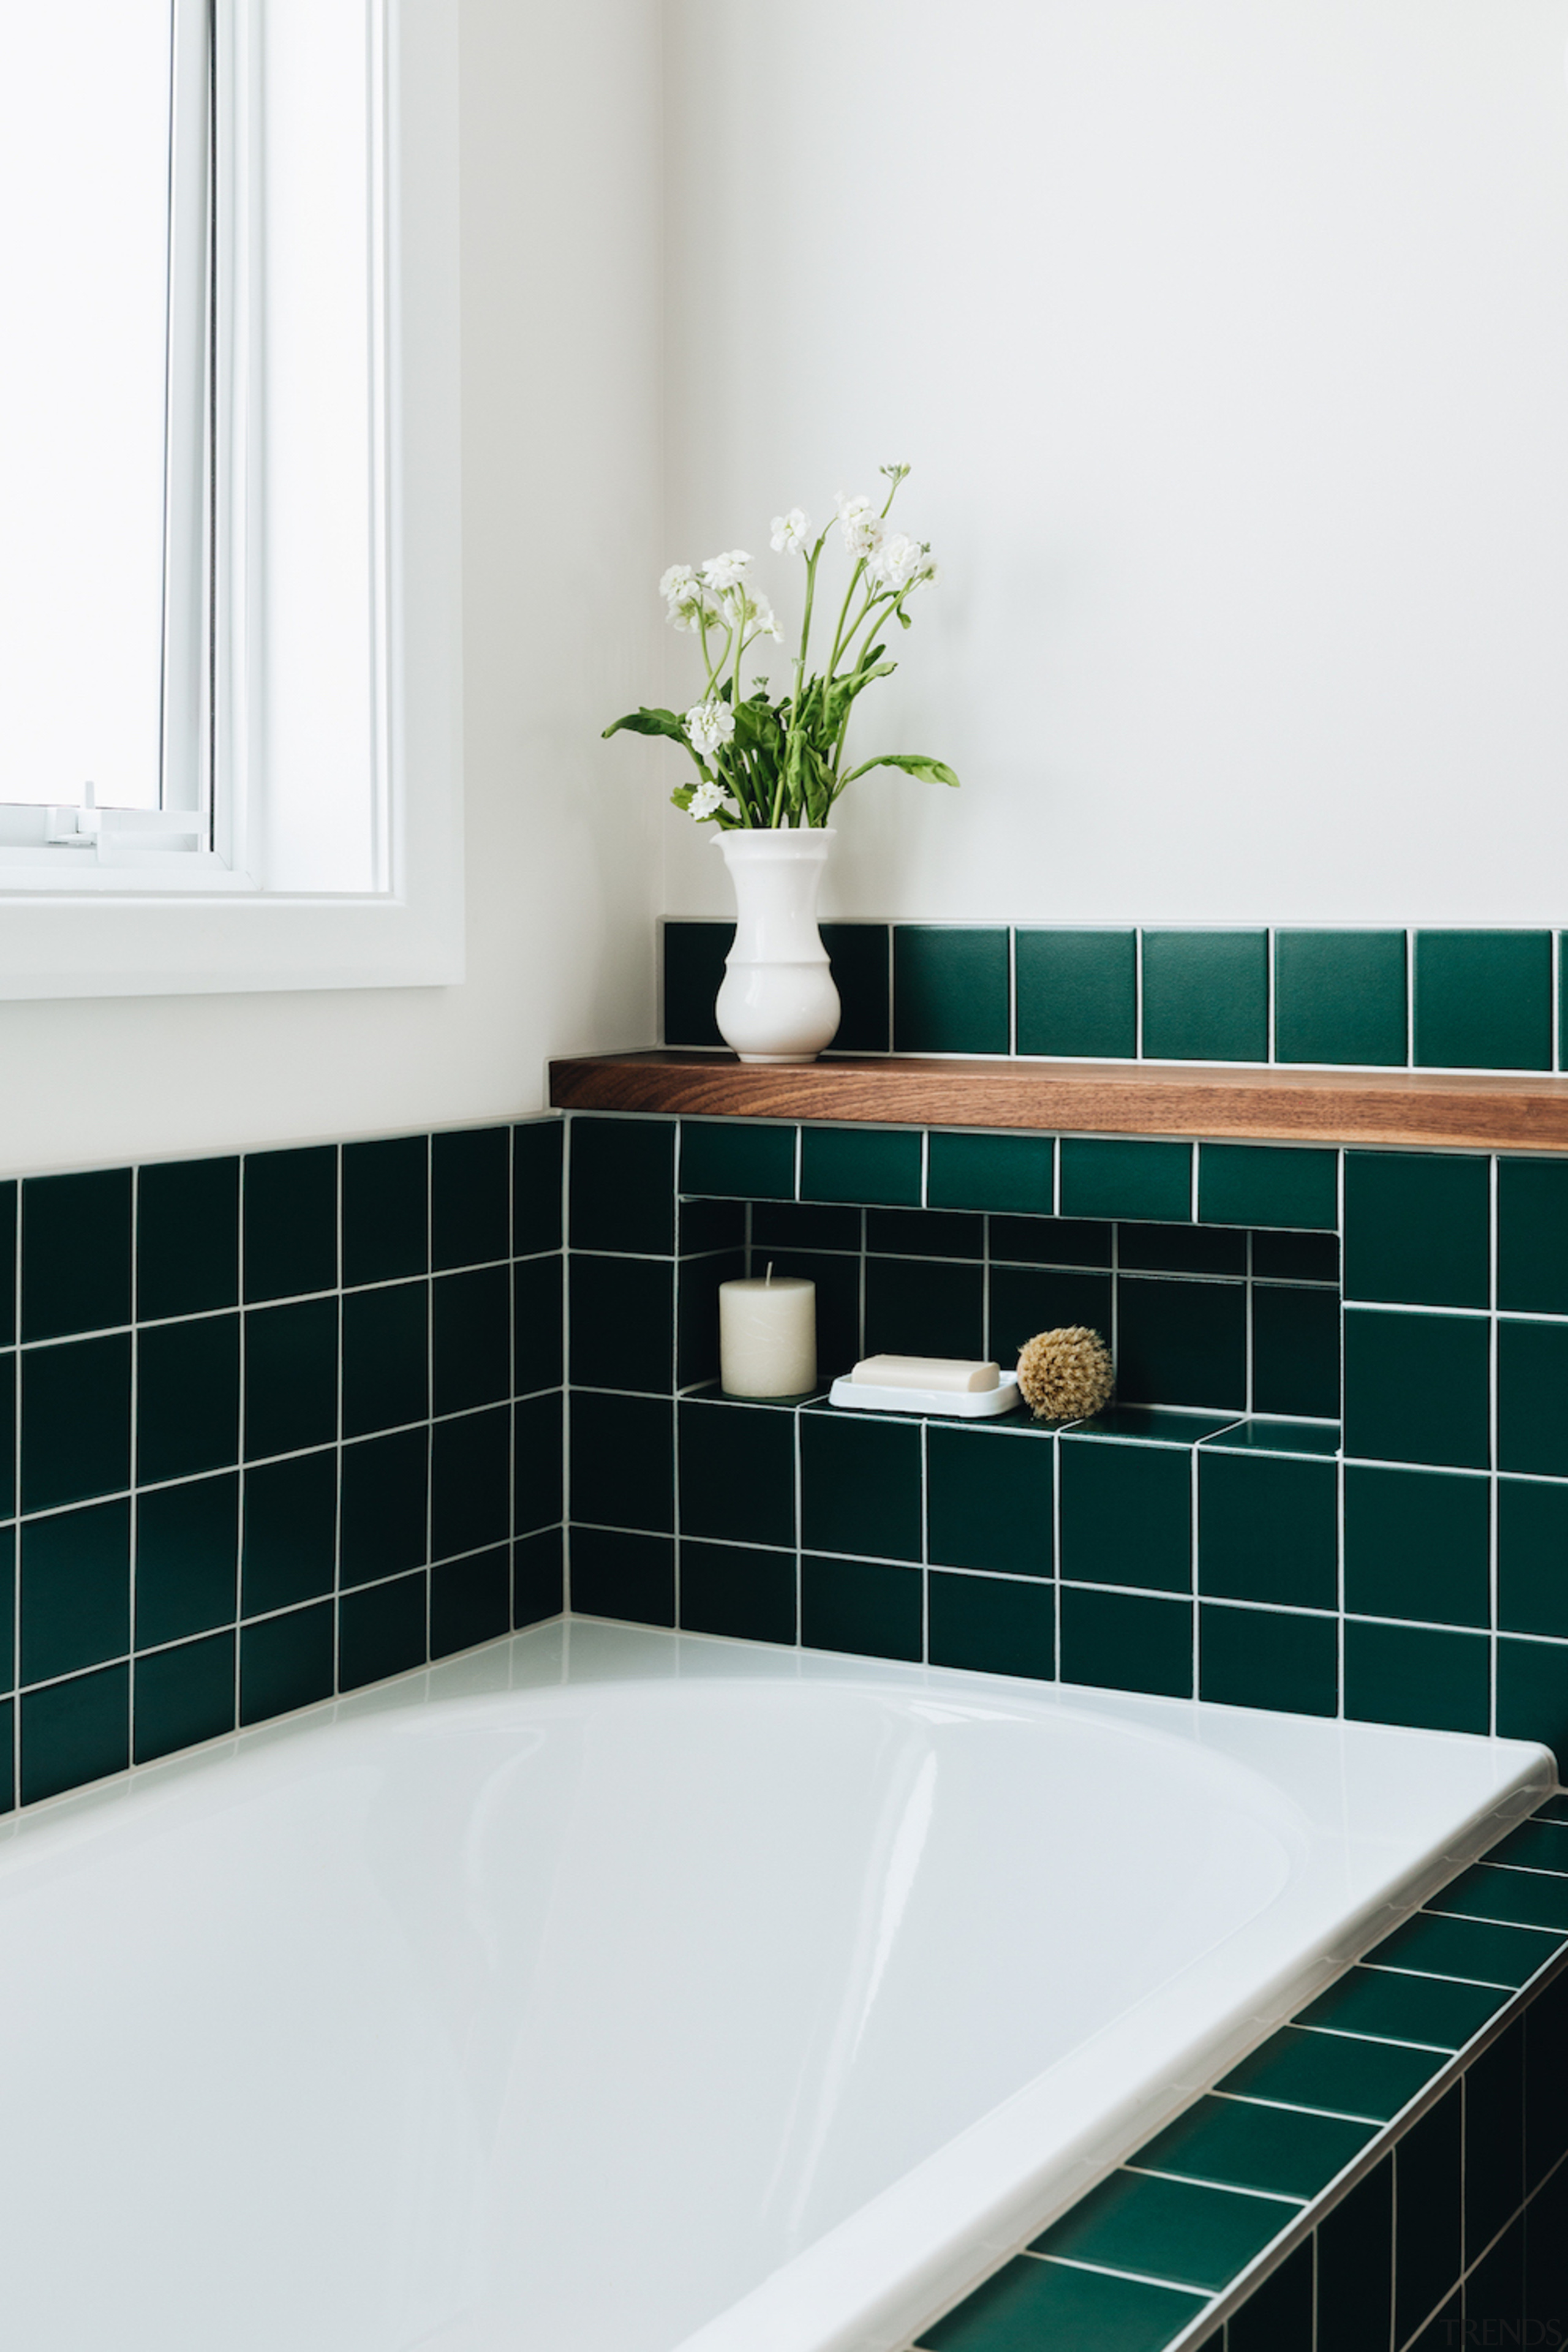 The bath soap niche is painstakingly lined with